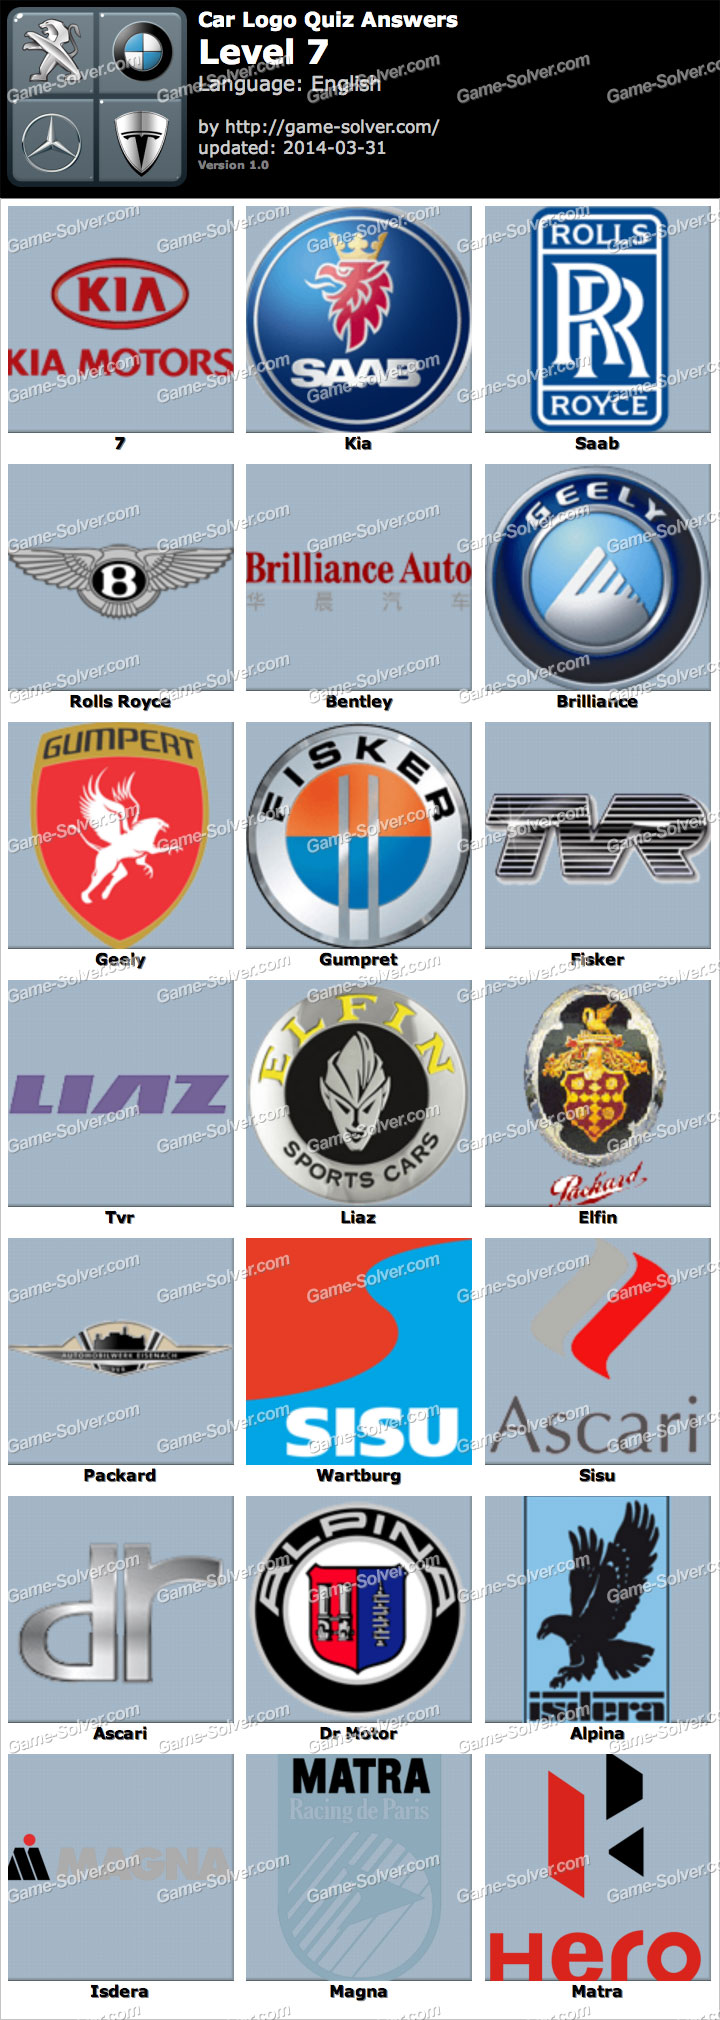 Car Logo Quiz Level 7 - Game Solver Cars Logos Quiz Answers